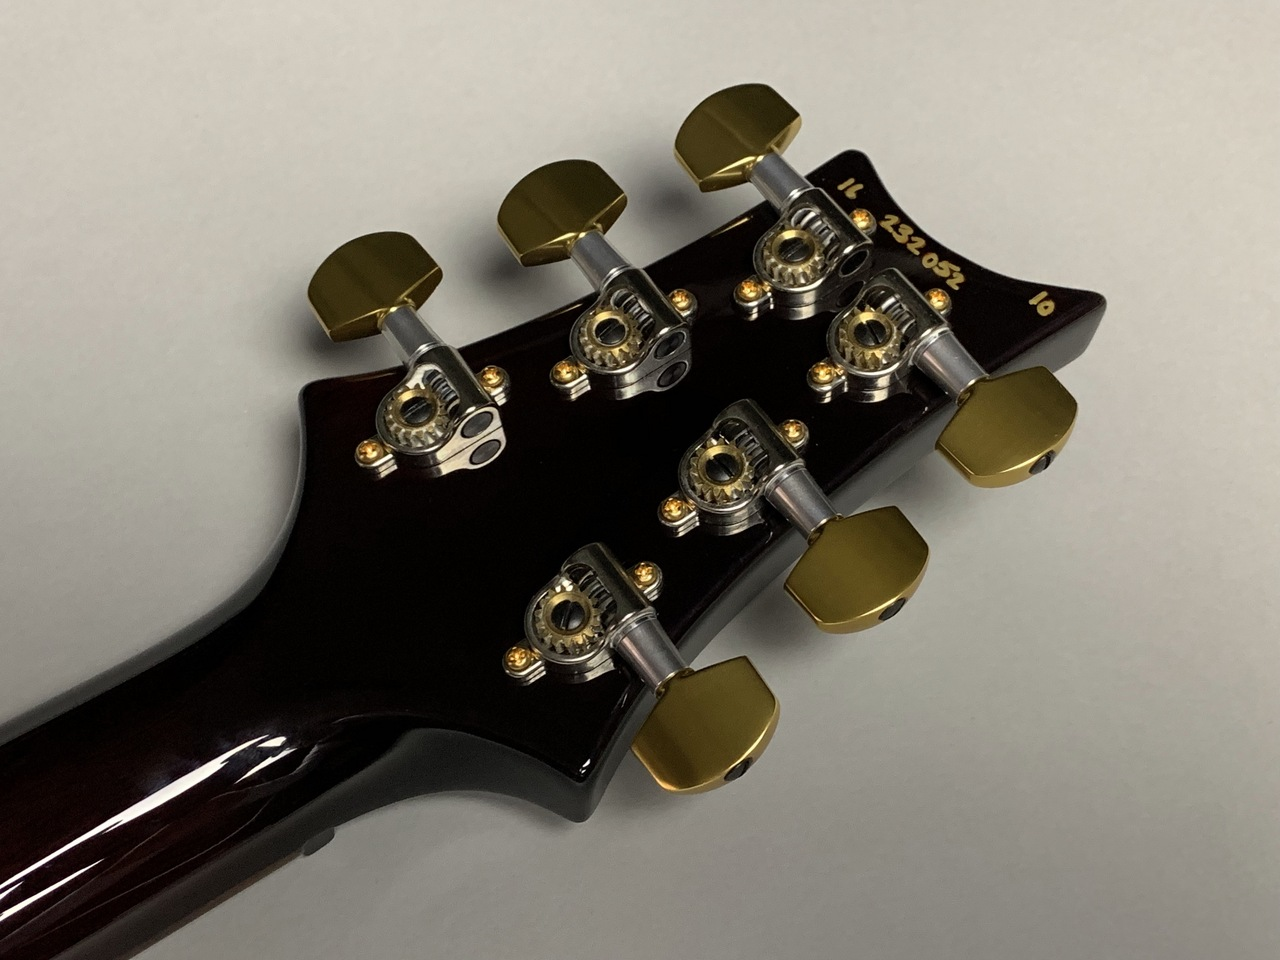 CUSTOM 24 /10Top/2016 LTD (Black Gold Burst)のケース・その他画像